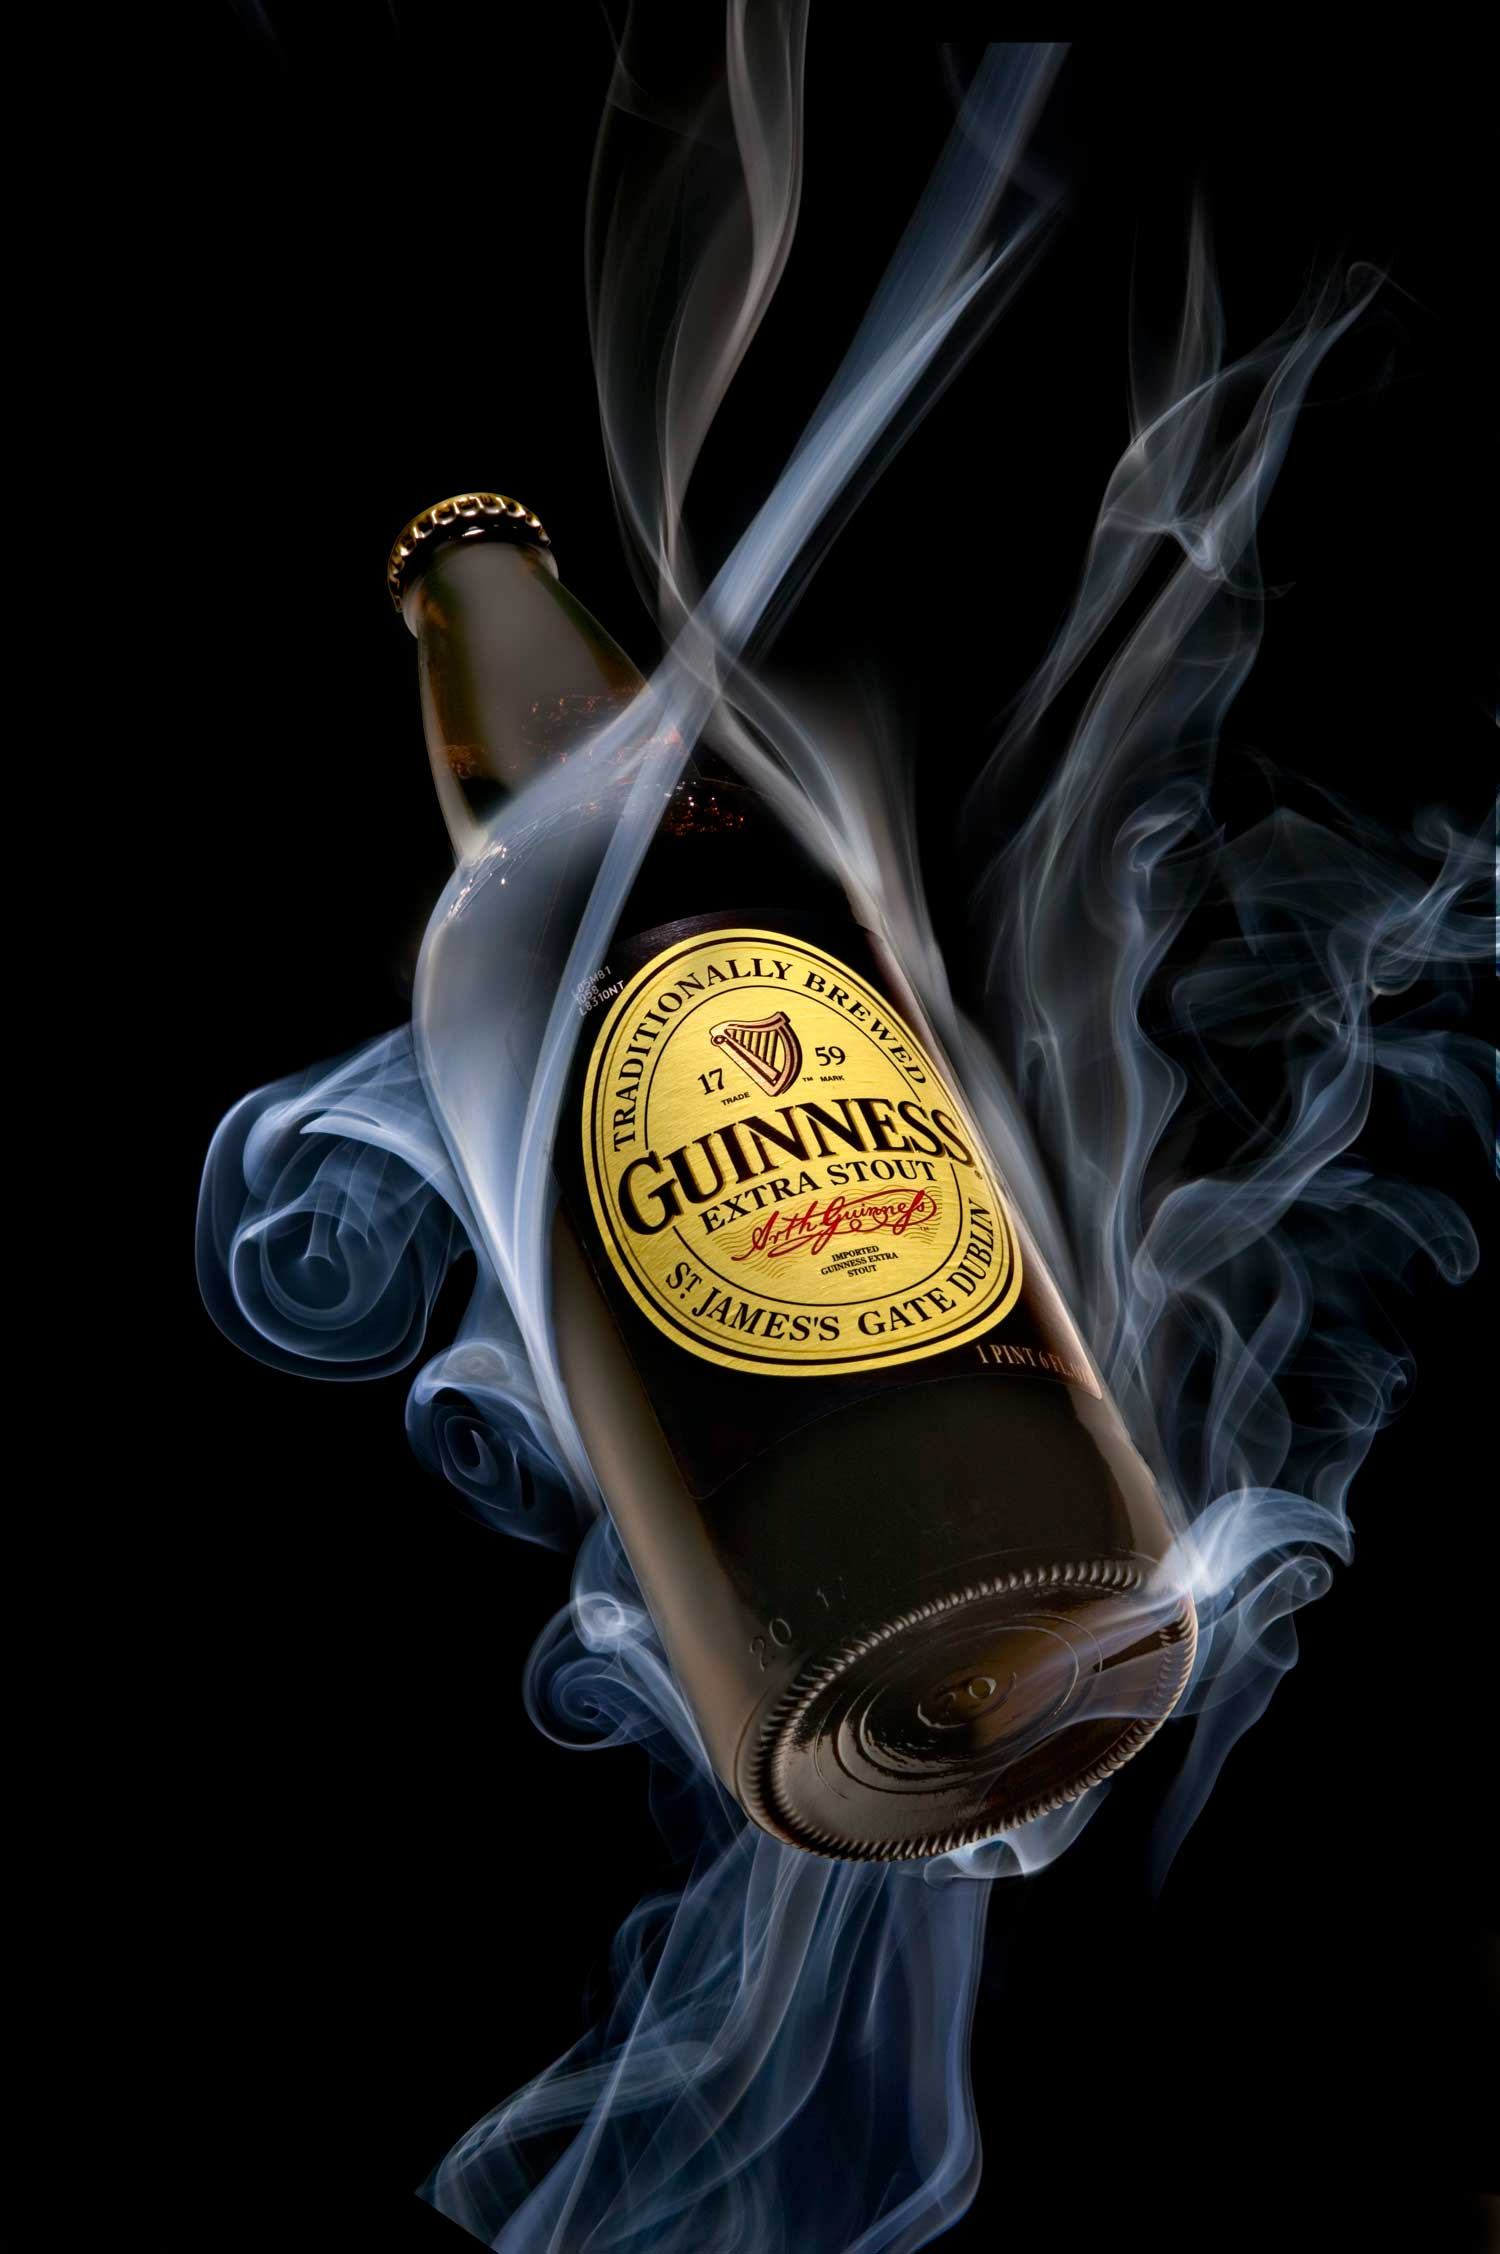 Guinness bottle still life